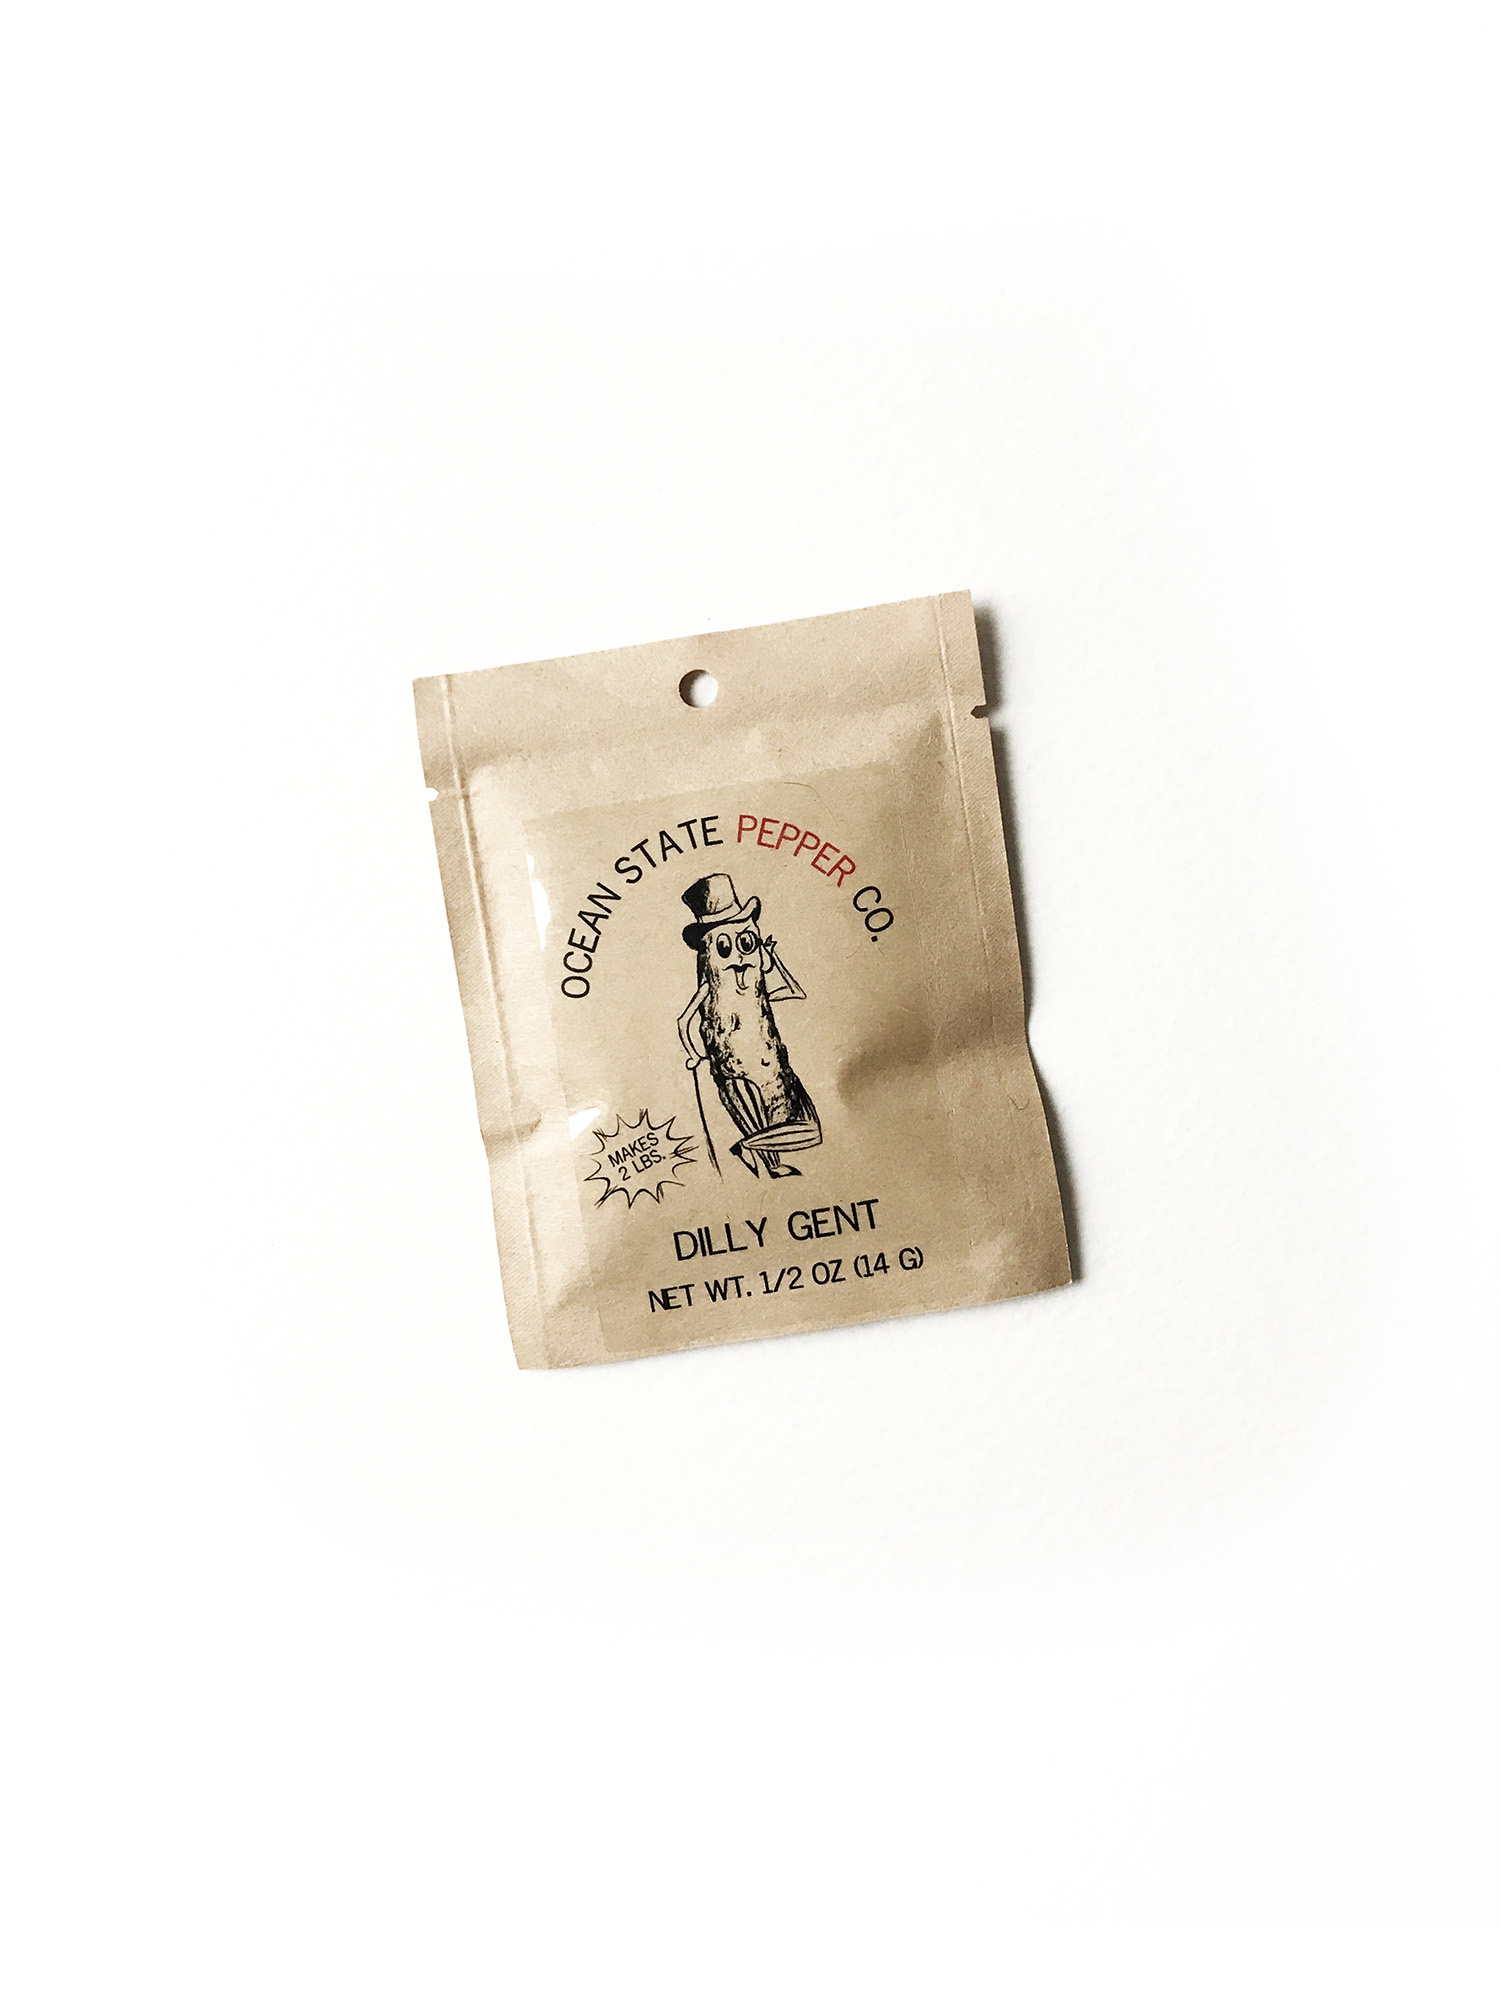 Ocean State Pepper Co. Pouches-6